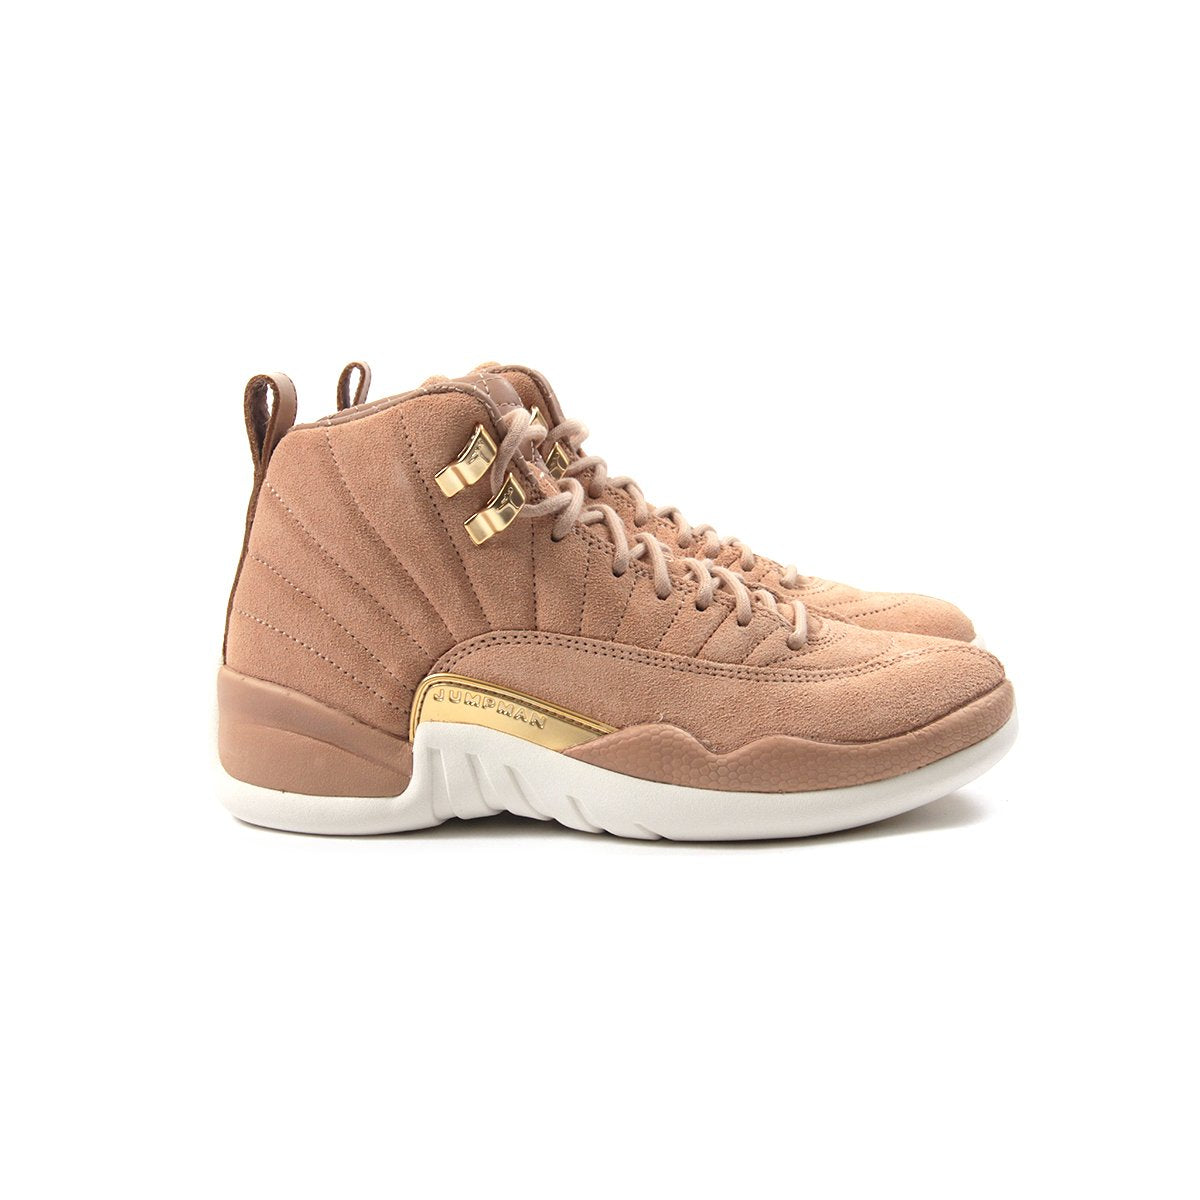 huge discount aeaec bcf06 ConceptsIntl   Nike Womens Air Jordan 12 Retro (Vachetta Tan Metallic  Gold-Sail)